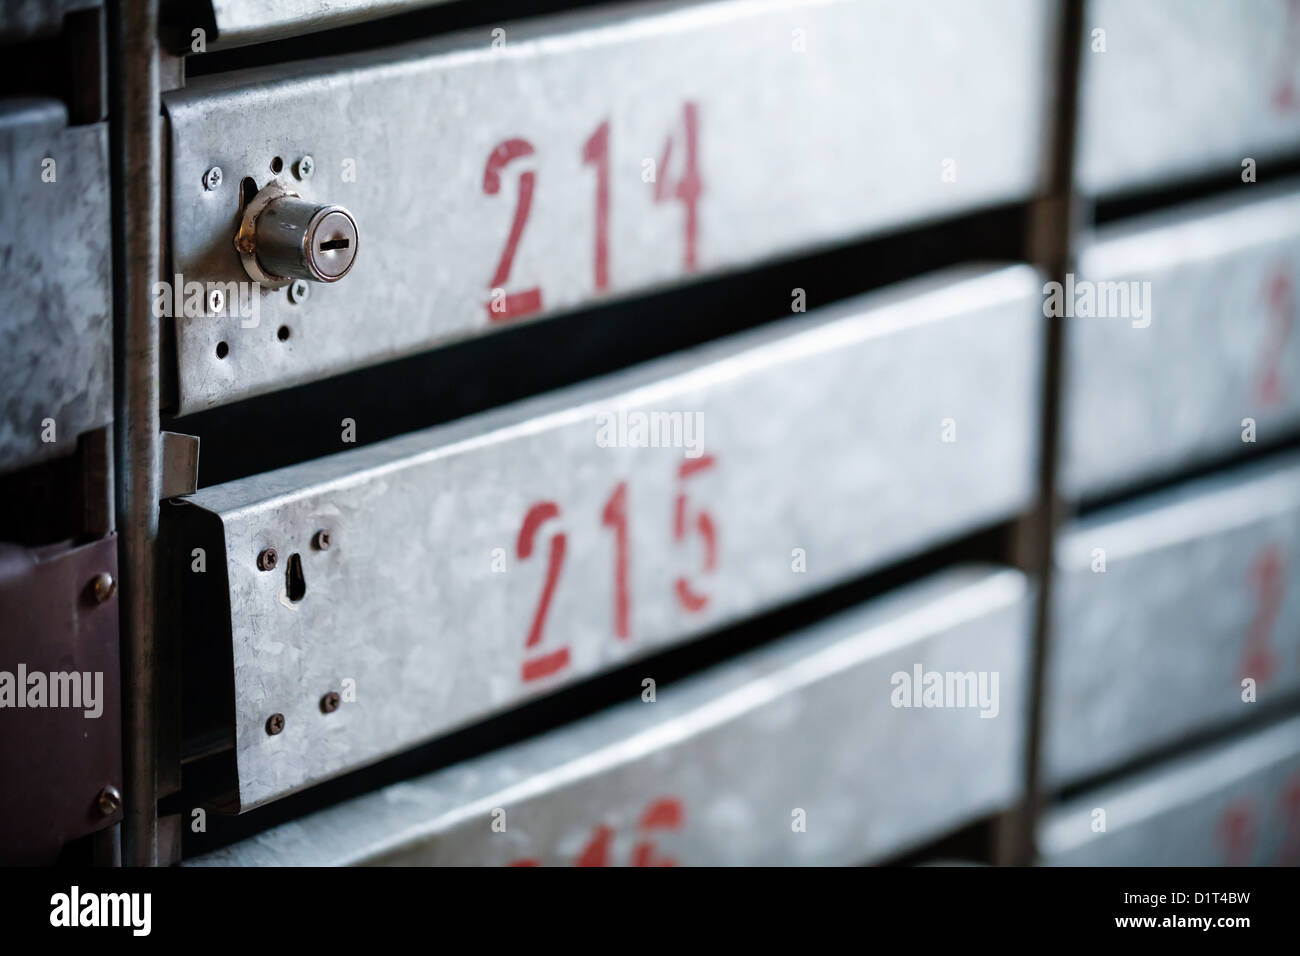 Old iron postboxes with locks and red apartment numbers - Stock Image